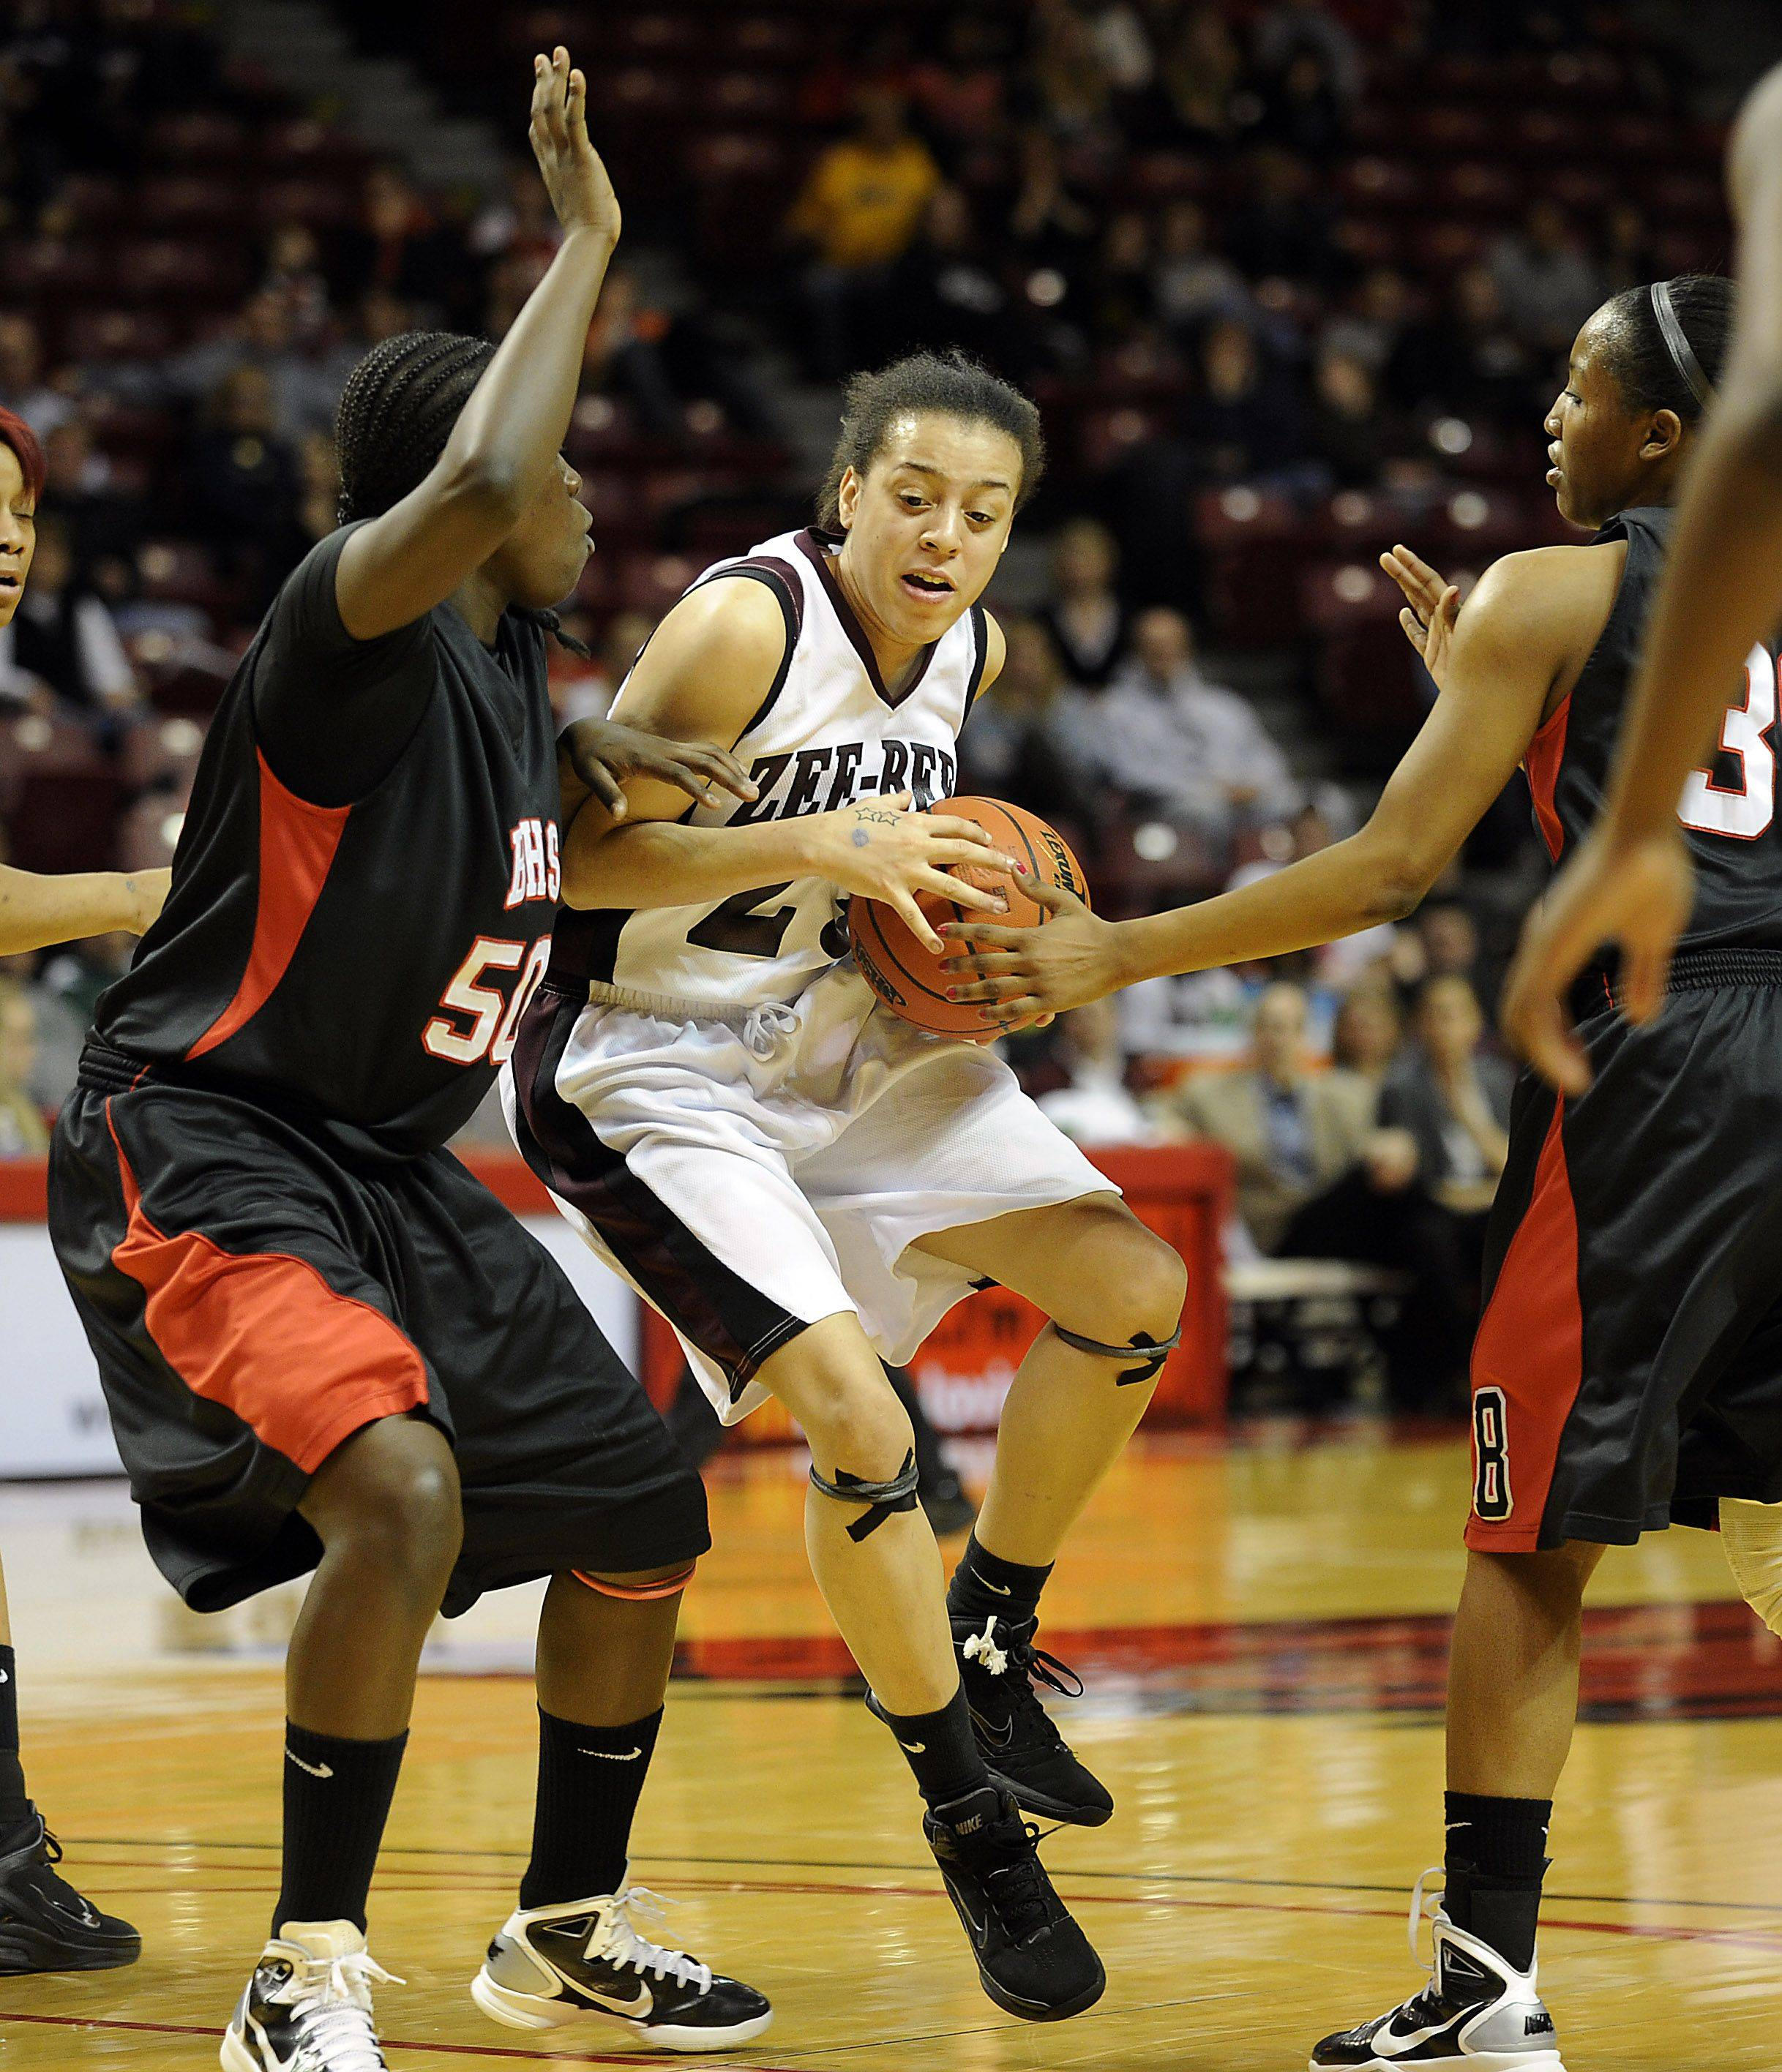 Zion-Benton's Juanita Robinson is called for traveling as she drives the lane as Bolingbrook's Cabriana Capers and teammate Kierra Ray provide strong defense in the girls Class 4A Girls Basketball Tournament at the Redbird Arena in Normal on Saturday.